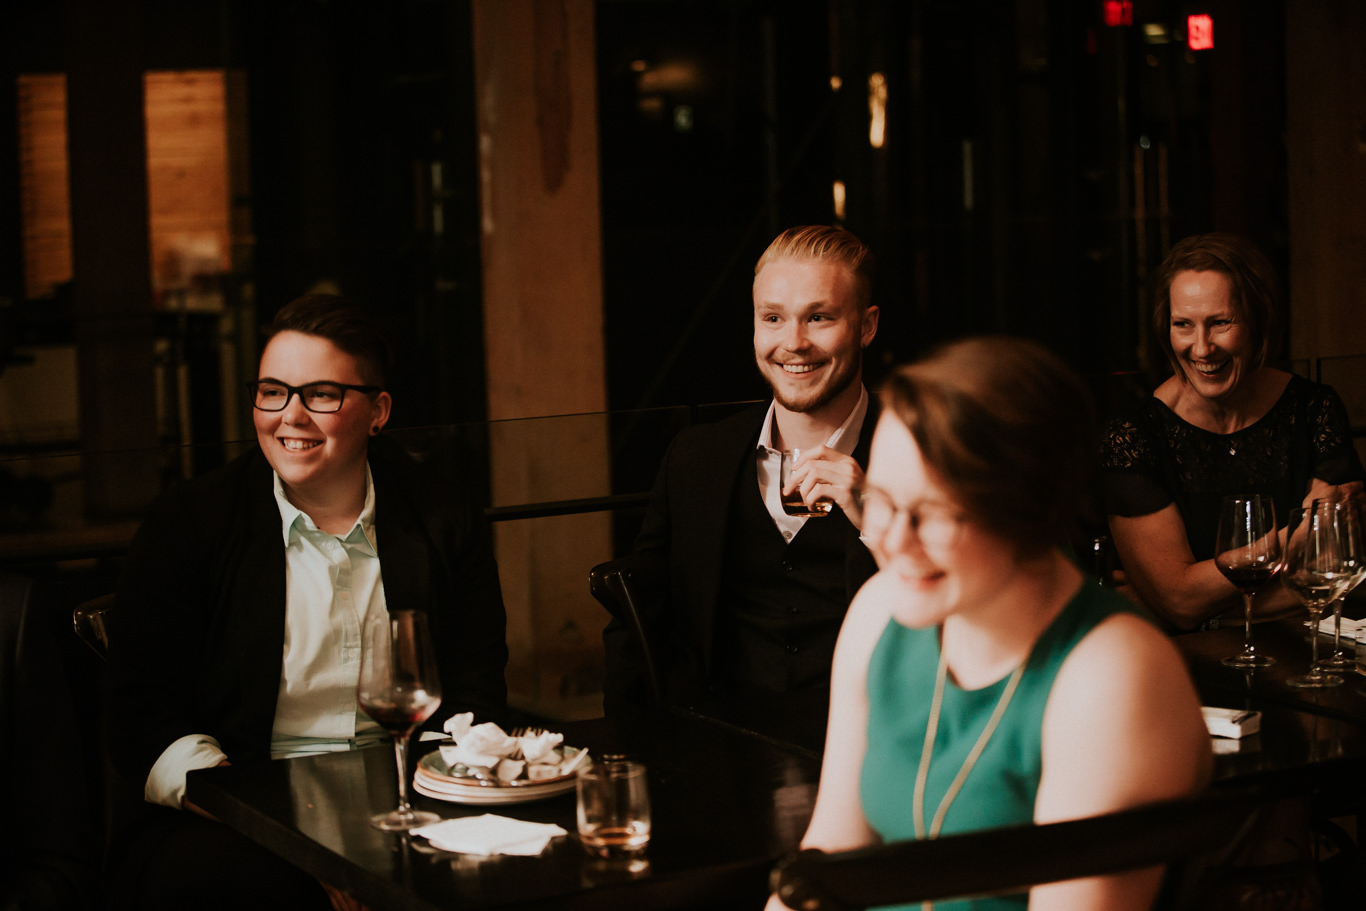 Lindsay-and-Heather-Charbar-Restaurant-Wedding-in-Calgary-187